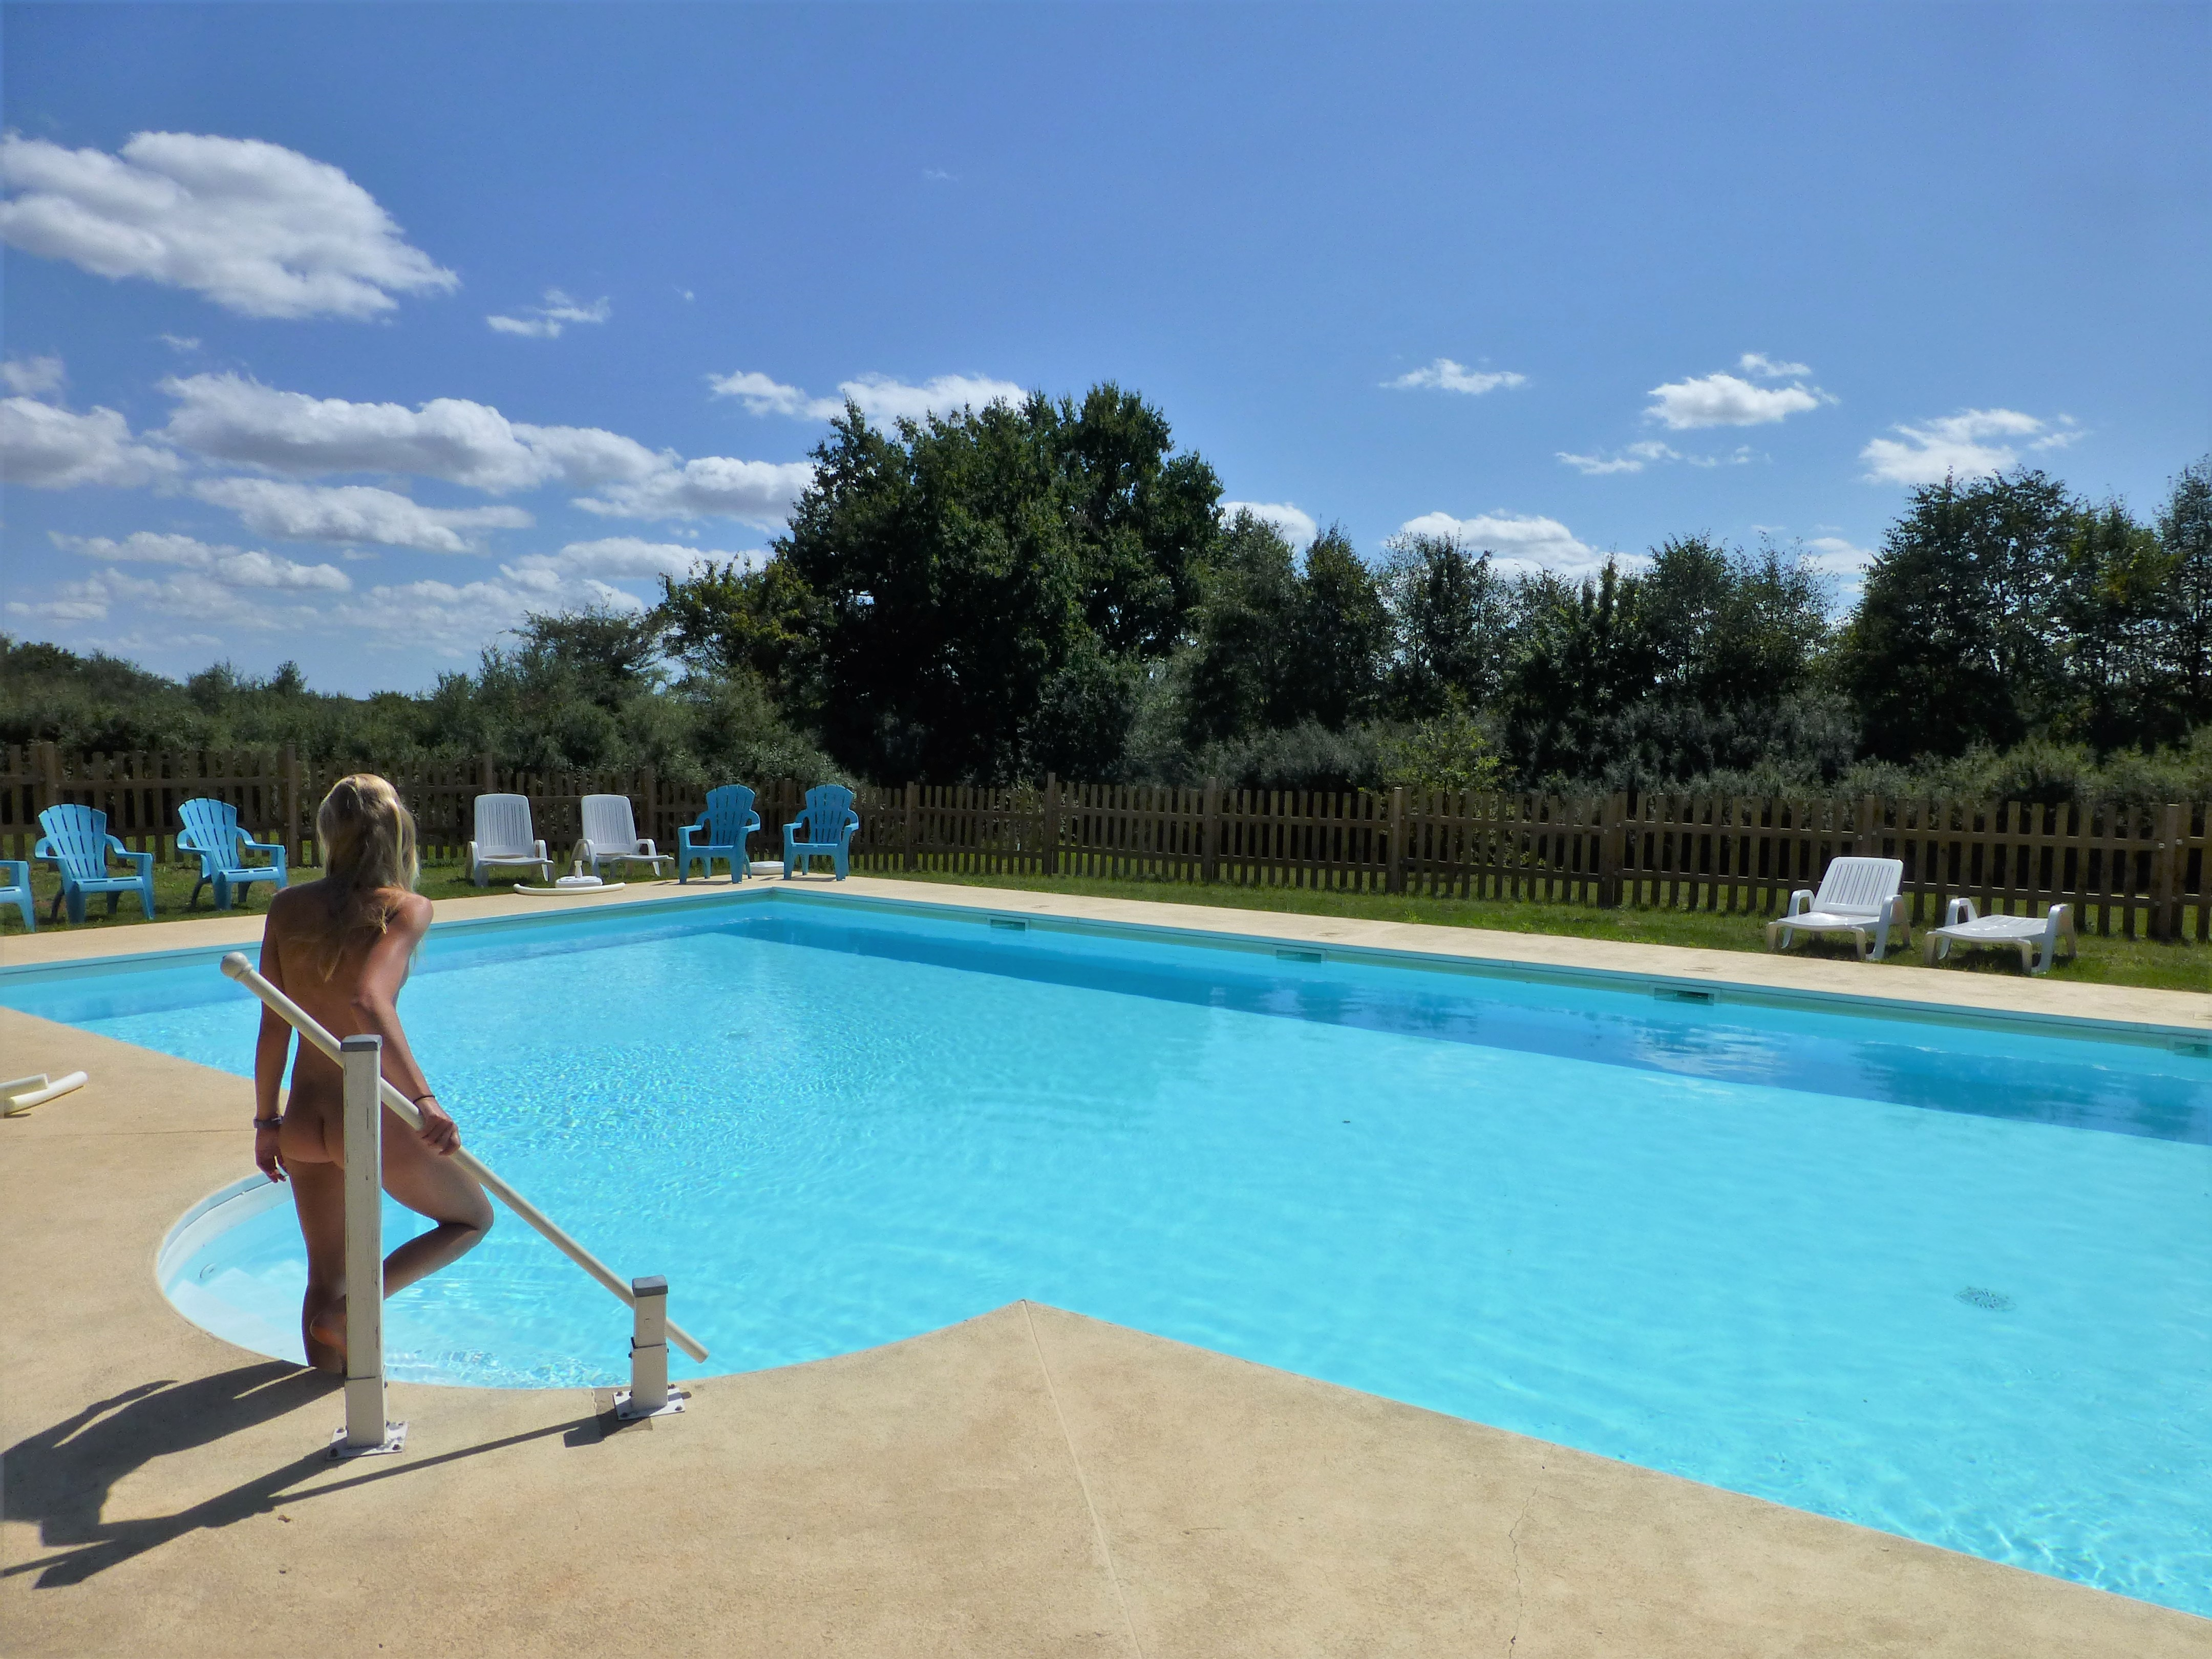 Naturistencamping Met Zwembad Camping Naturistencamping Les Fourneaux Couzon